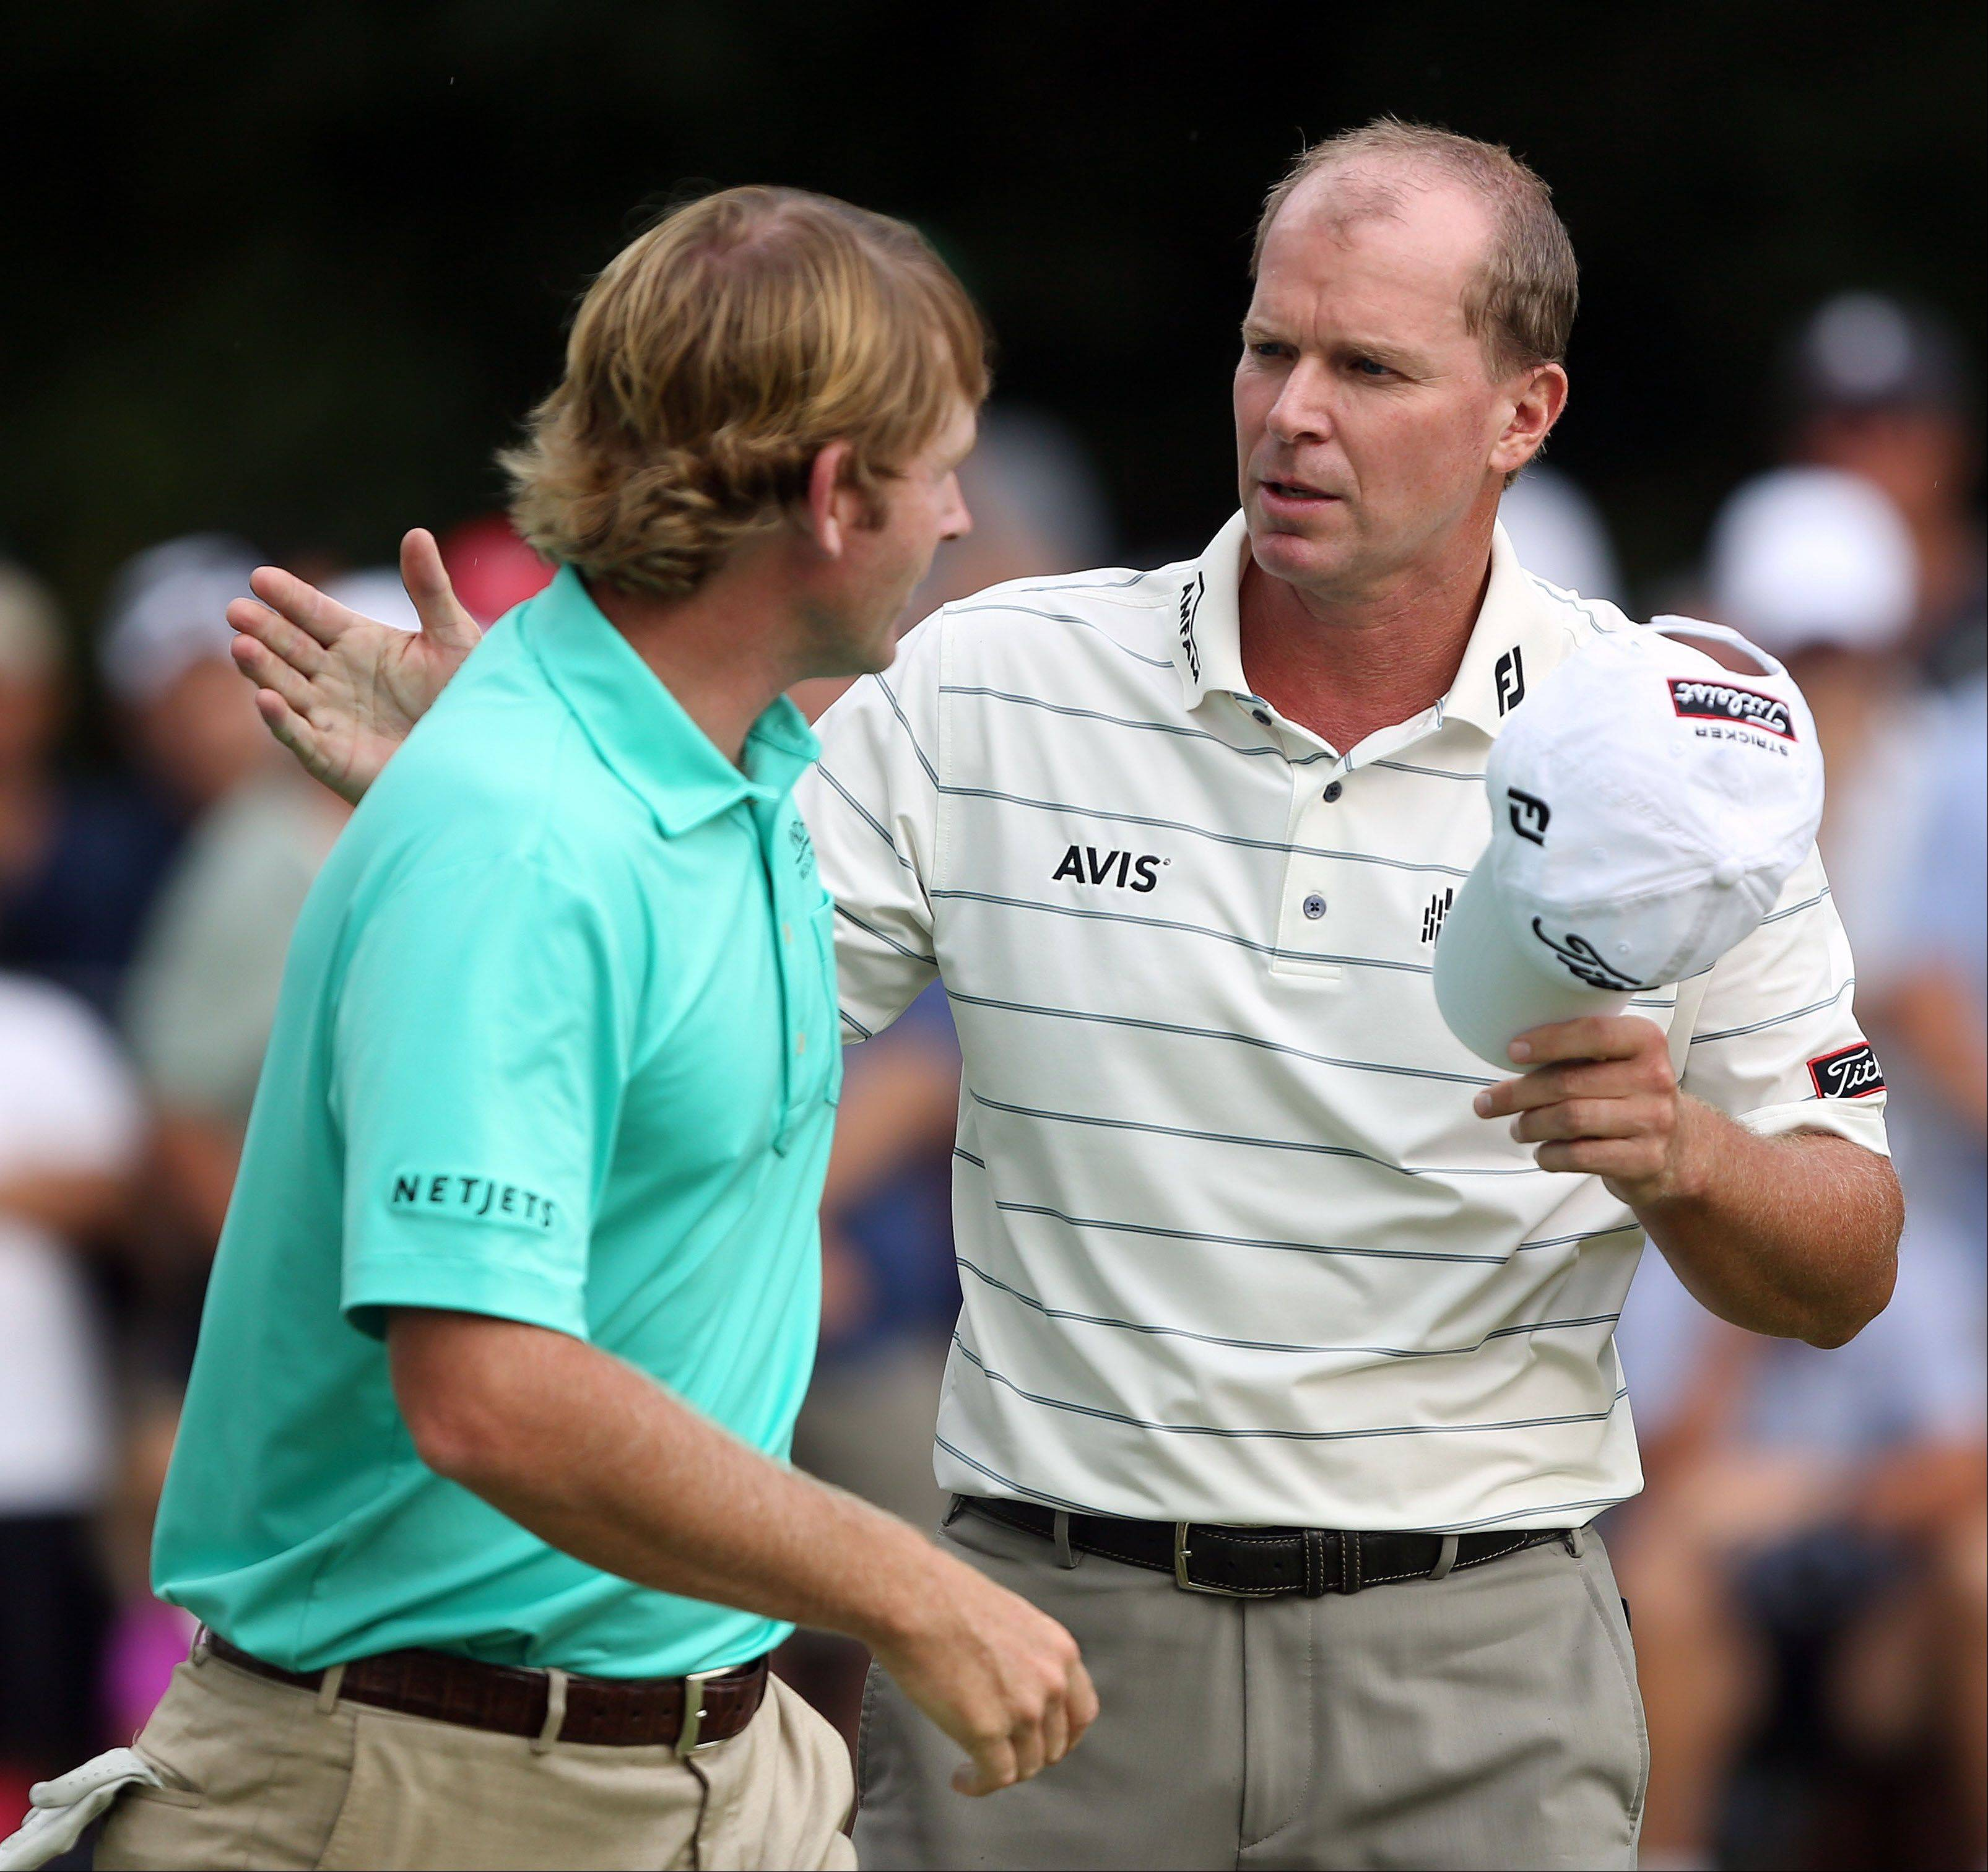 Brandt Snedeker and Steve Stricker shake hands after their round.